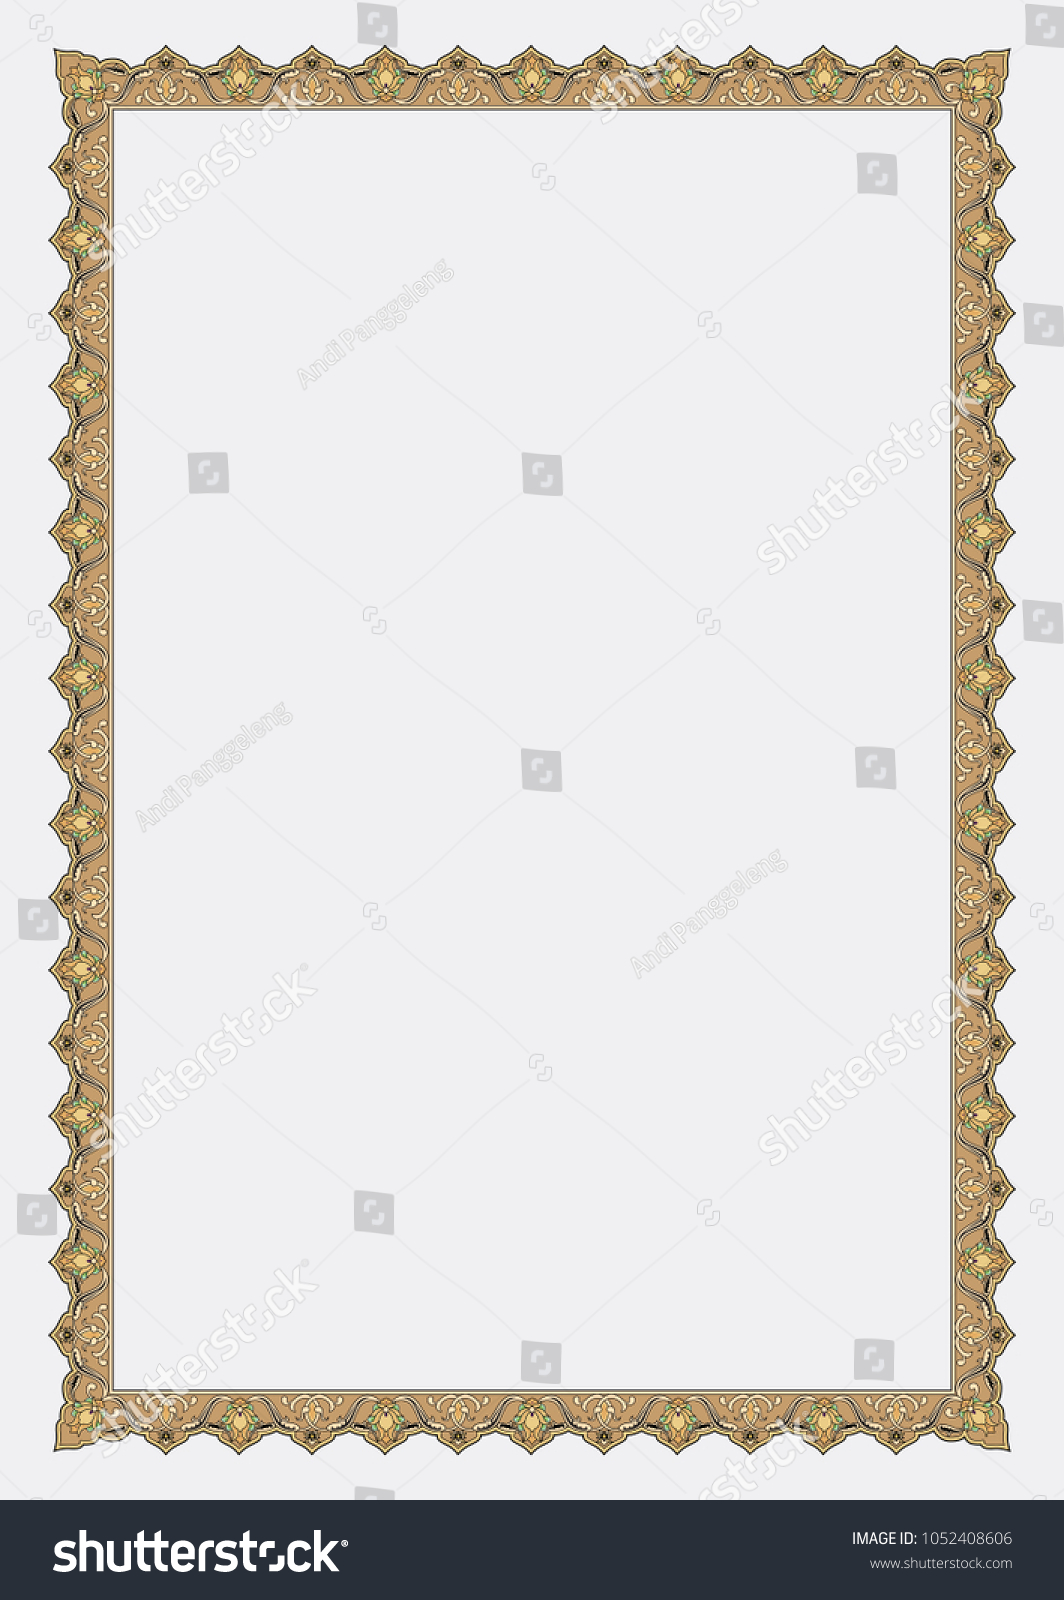 Islamic Page Book Frame Border Stock Vector (Royalty Free ...